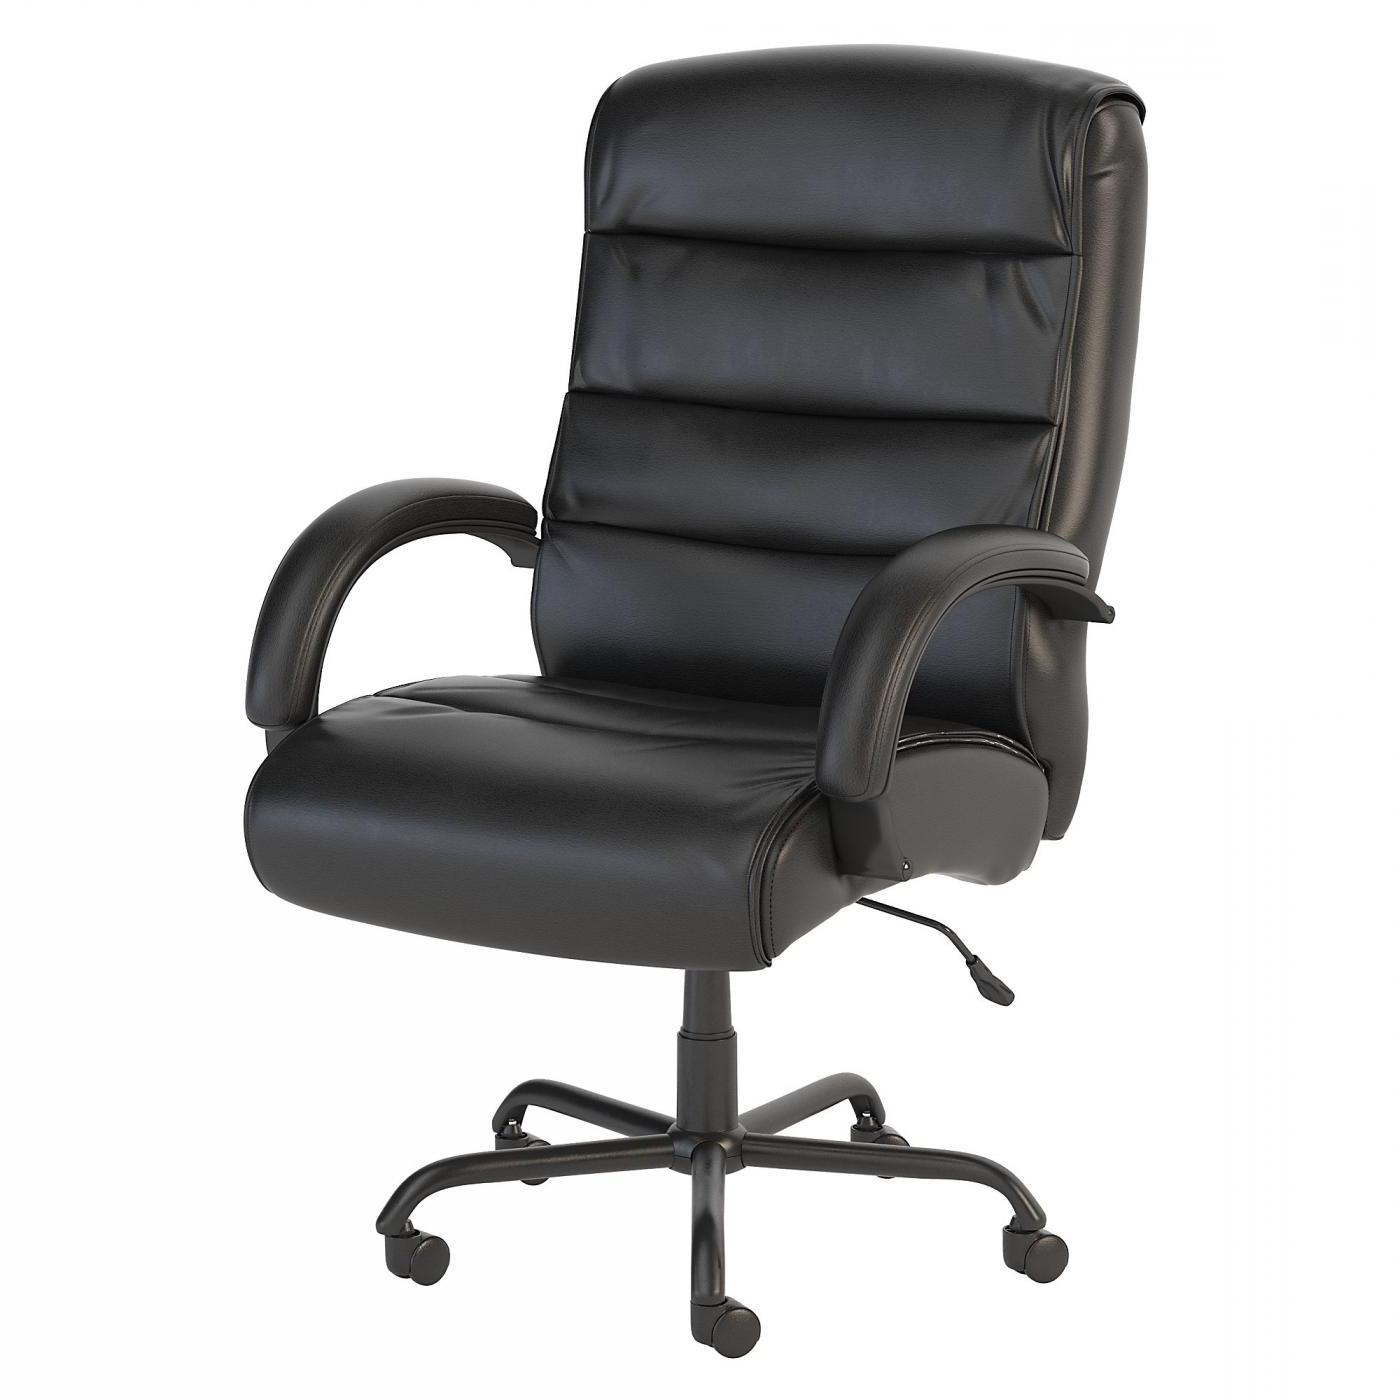 <font color=#c60><b>BUSH BUSINESS FURNITURE SOFT SENSE BIG AND TALL HIGH BACK LEATHER EXECUTIVE OFFICE CHAIR. FREE SHIPPING</font></b> </font></b></font></b>